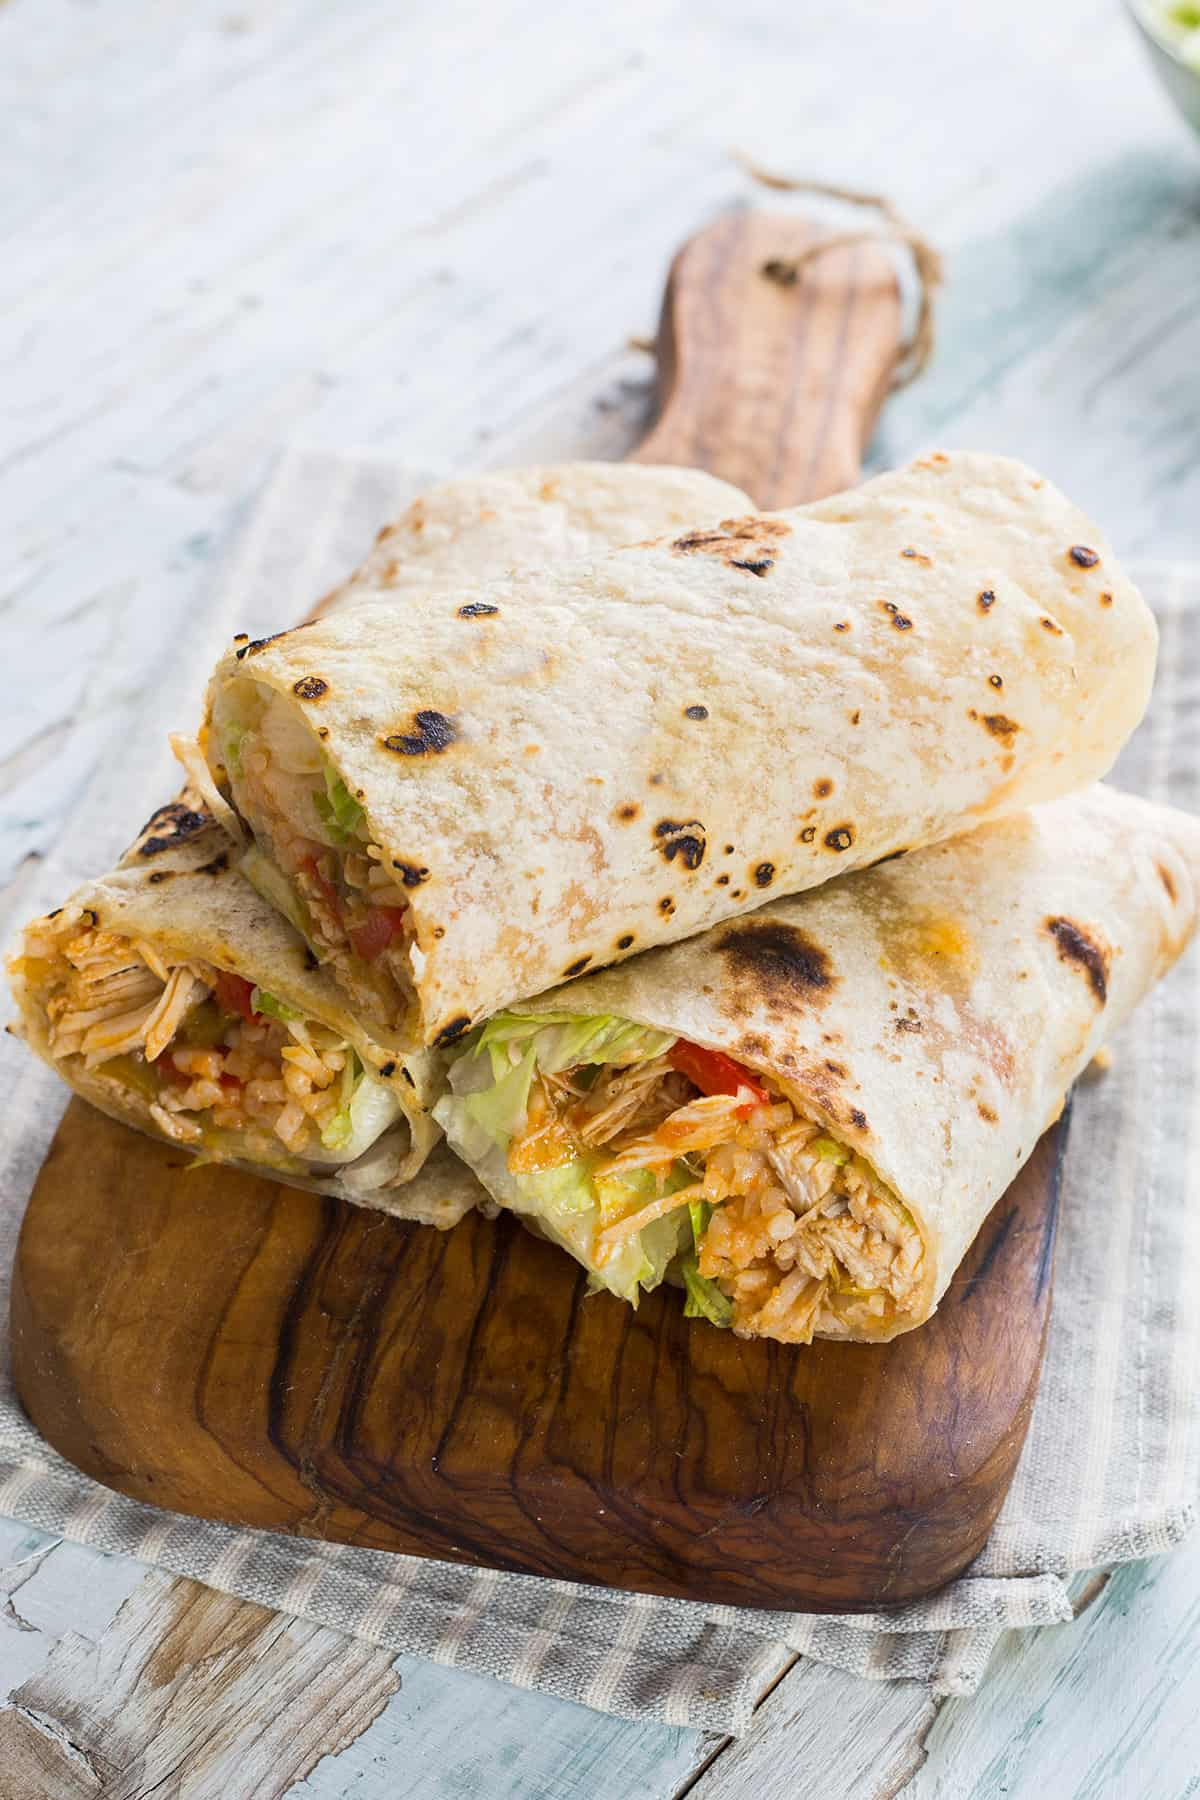 Chicken and rice burritos filled with juicy ingredients